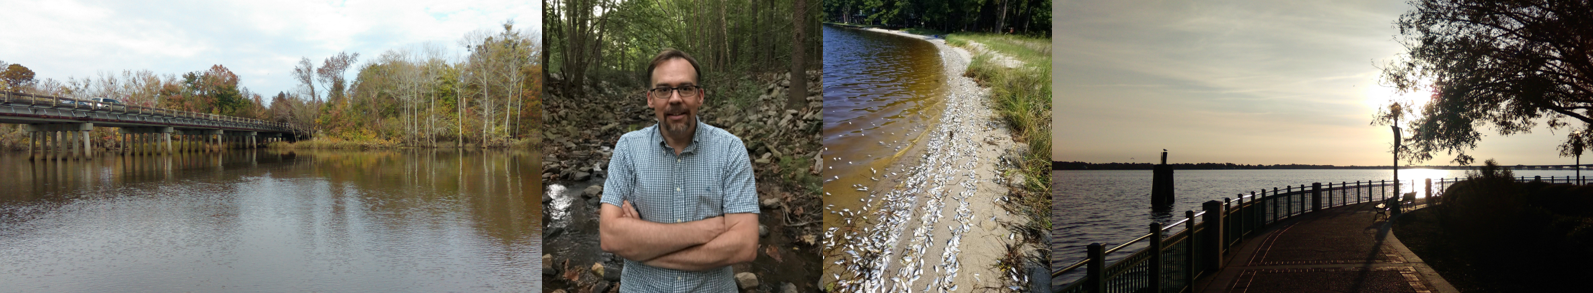 neuse river, Dr. Dan Obenour, fish kill